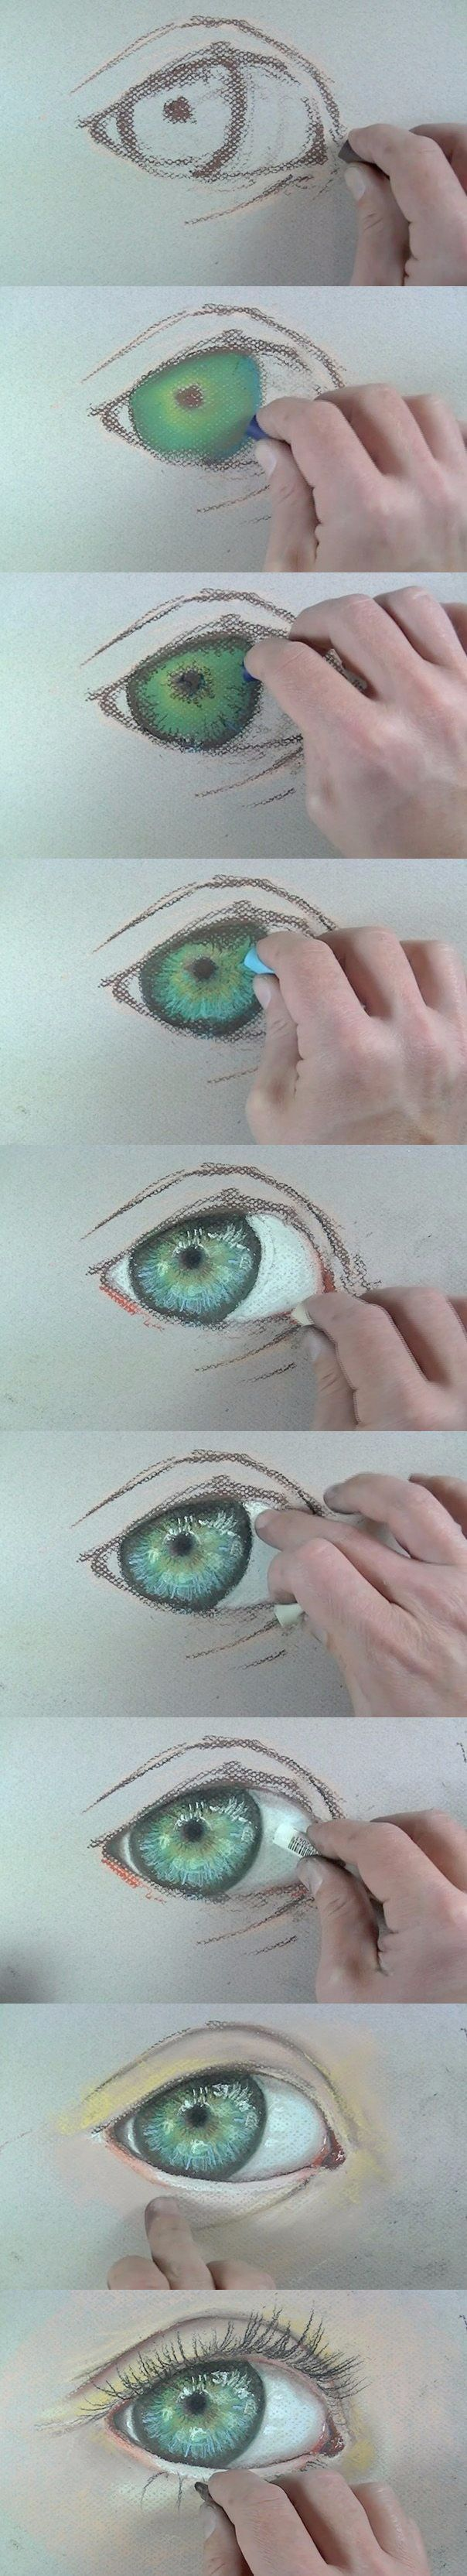 How To Draw An Eye With Crayon  �� �������� ��, ��� ������